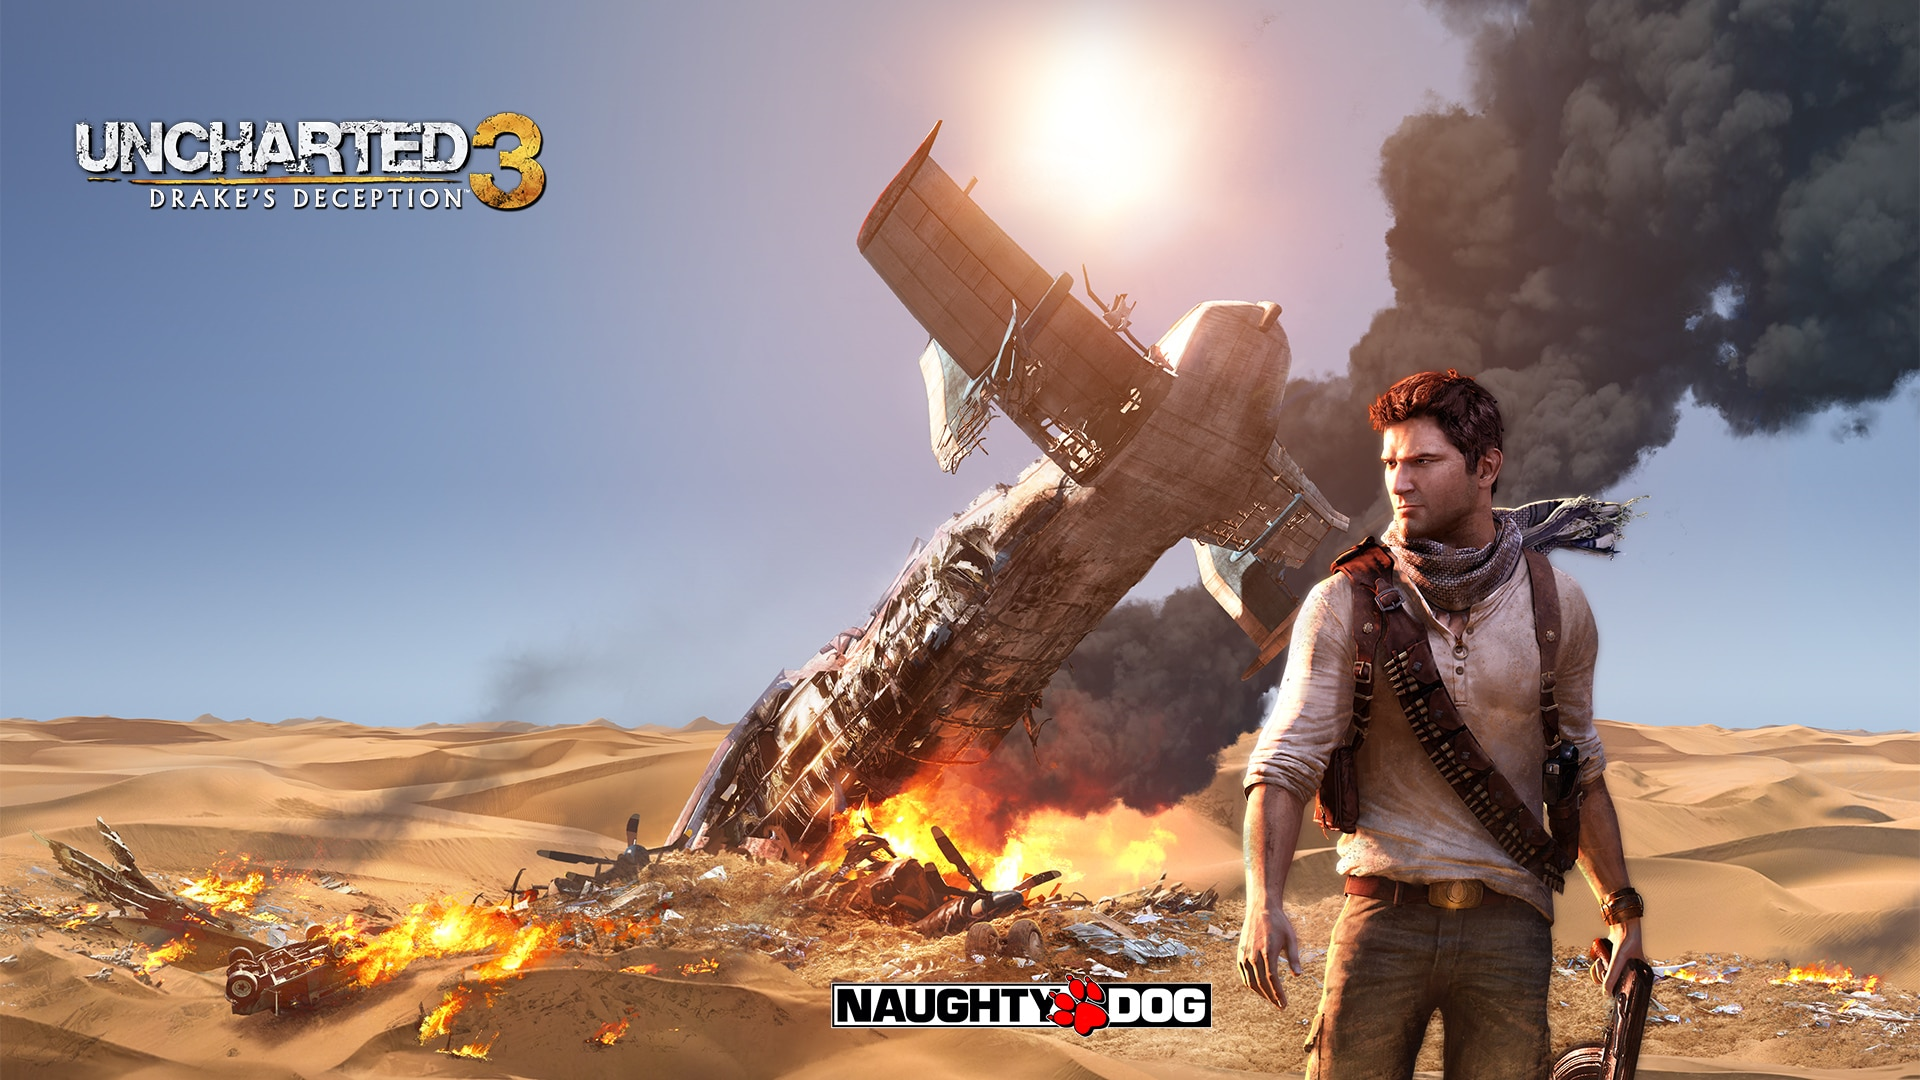 http://www.eklecty-city.fr/wp-content/uploads/2010/12/Uncharted-3-Drakes-Deception-Wallpaper.jpg